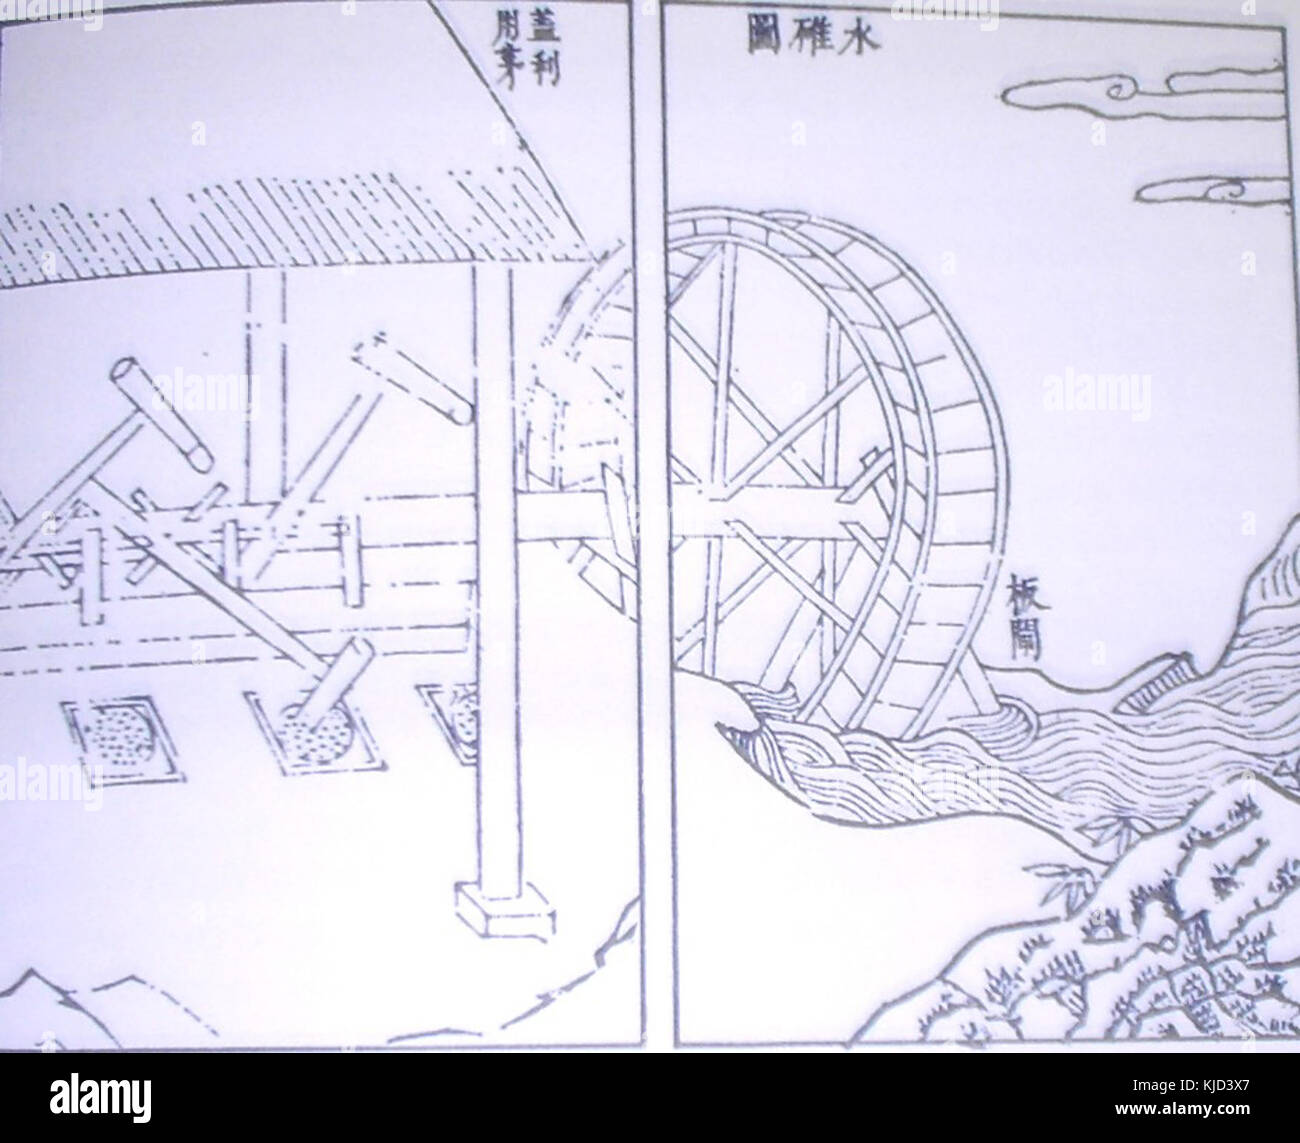 Trip Hammer Diagram Electrical Wiring Diagrams Cutler Transformer Hammers Stock Photos Images Alamy Hydraulic